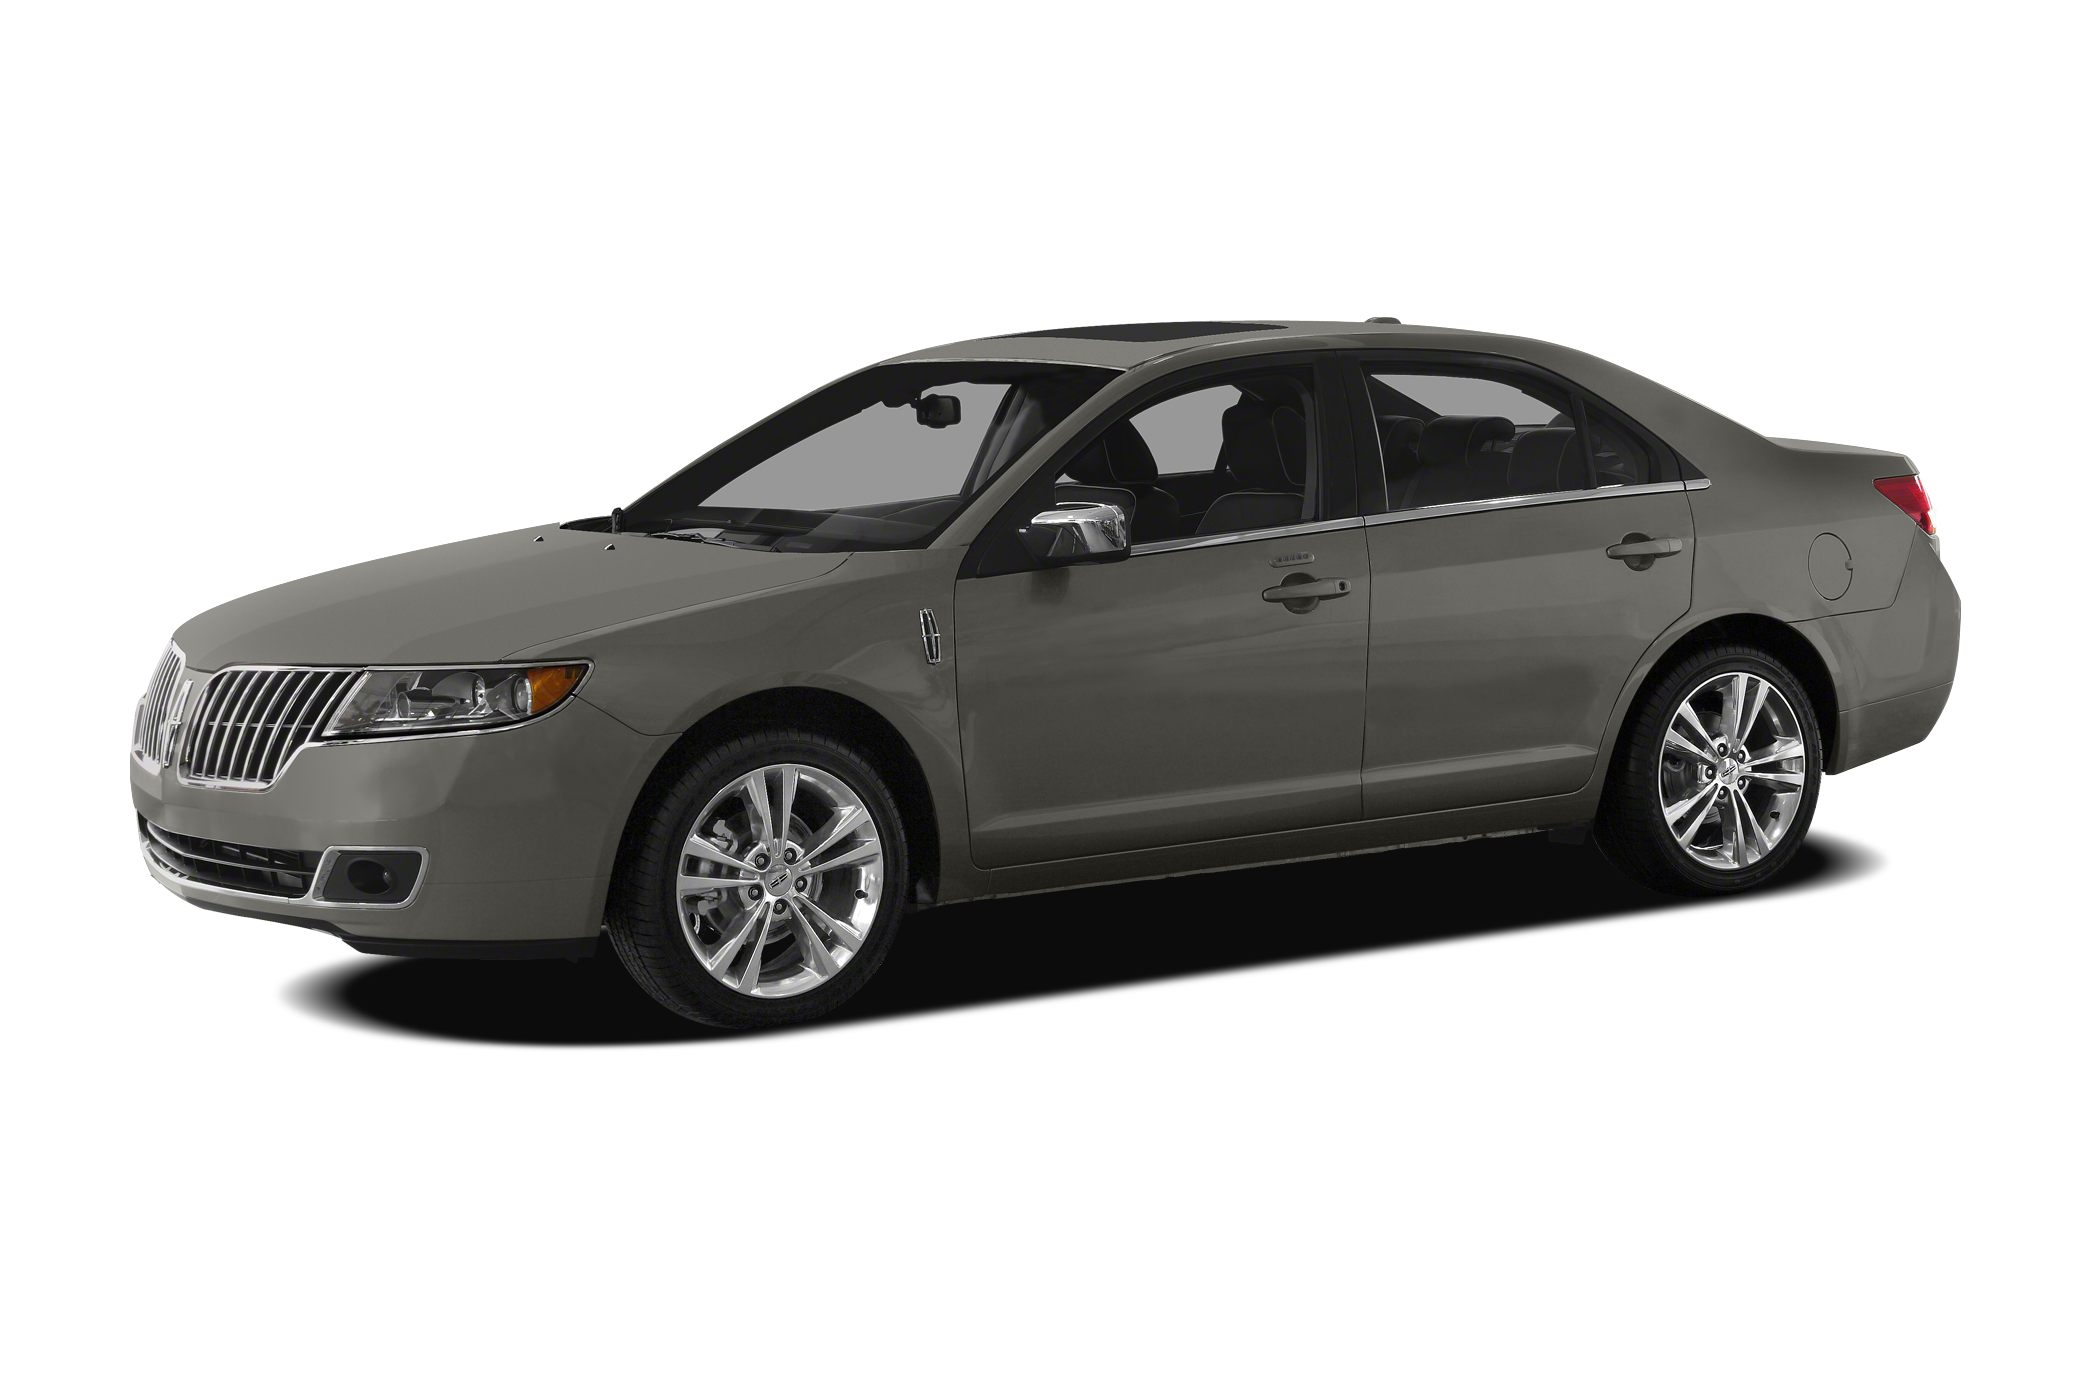 2011 Lincoln MKZ Base Sedan for sale in Franklin for $14,500 with 87,539 miles.